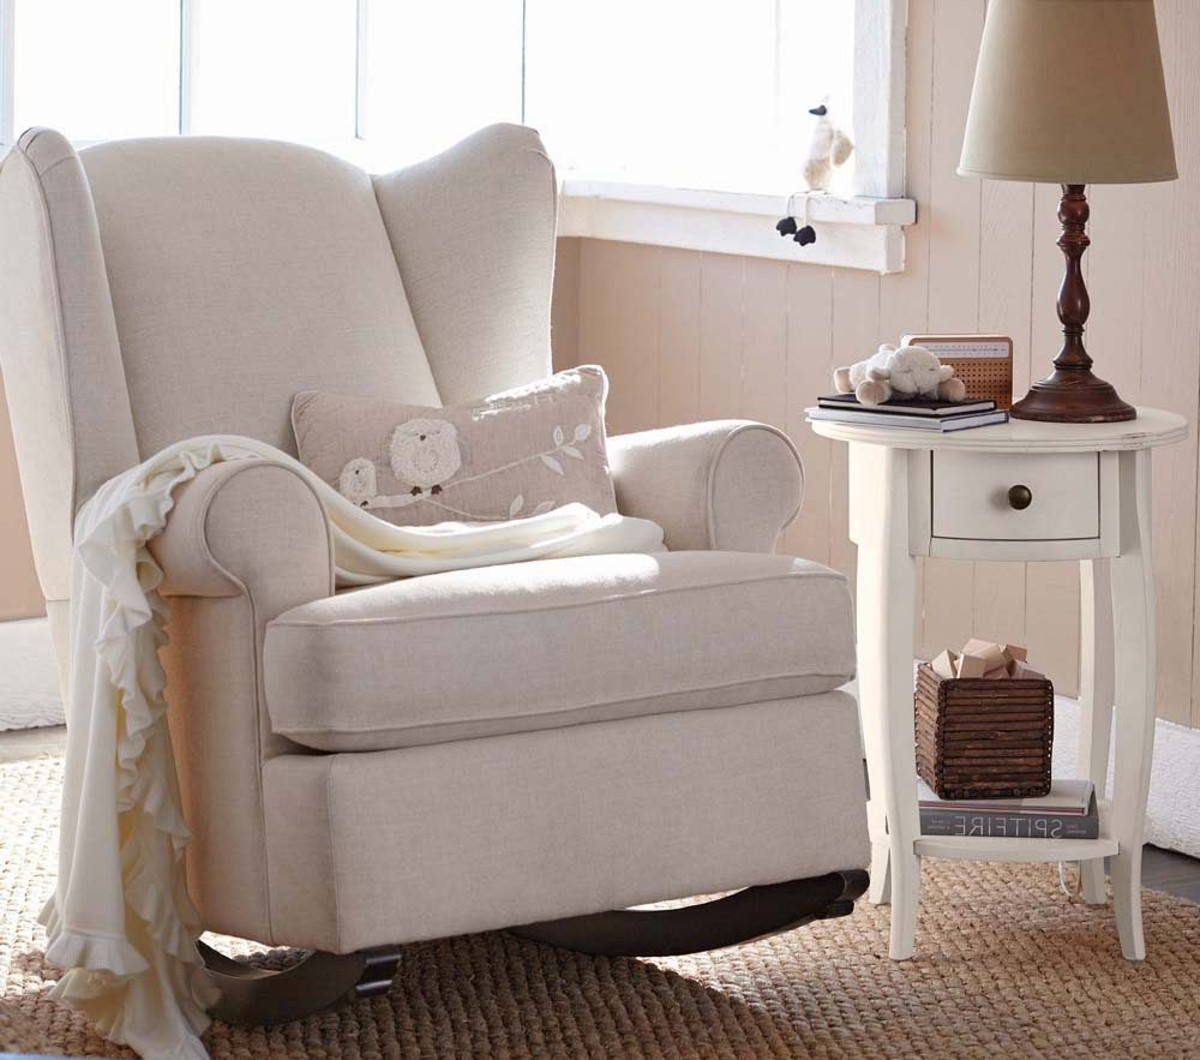 Popular Baby Nursery: Nice Rocking Chair For Baby Nursery Ideas Babies R Us Regarding Rocking Chairs For Baby Room (View 3 of 15)